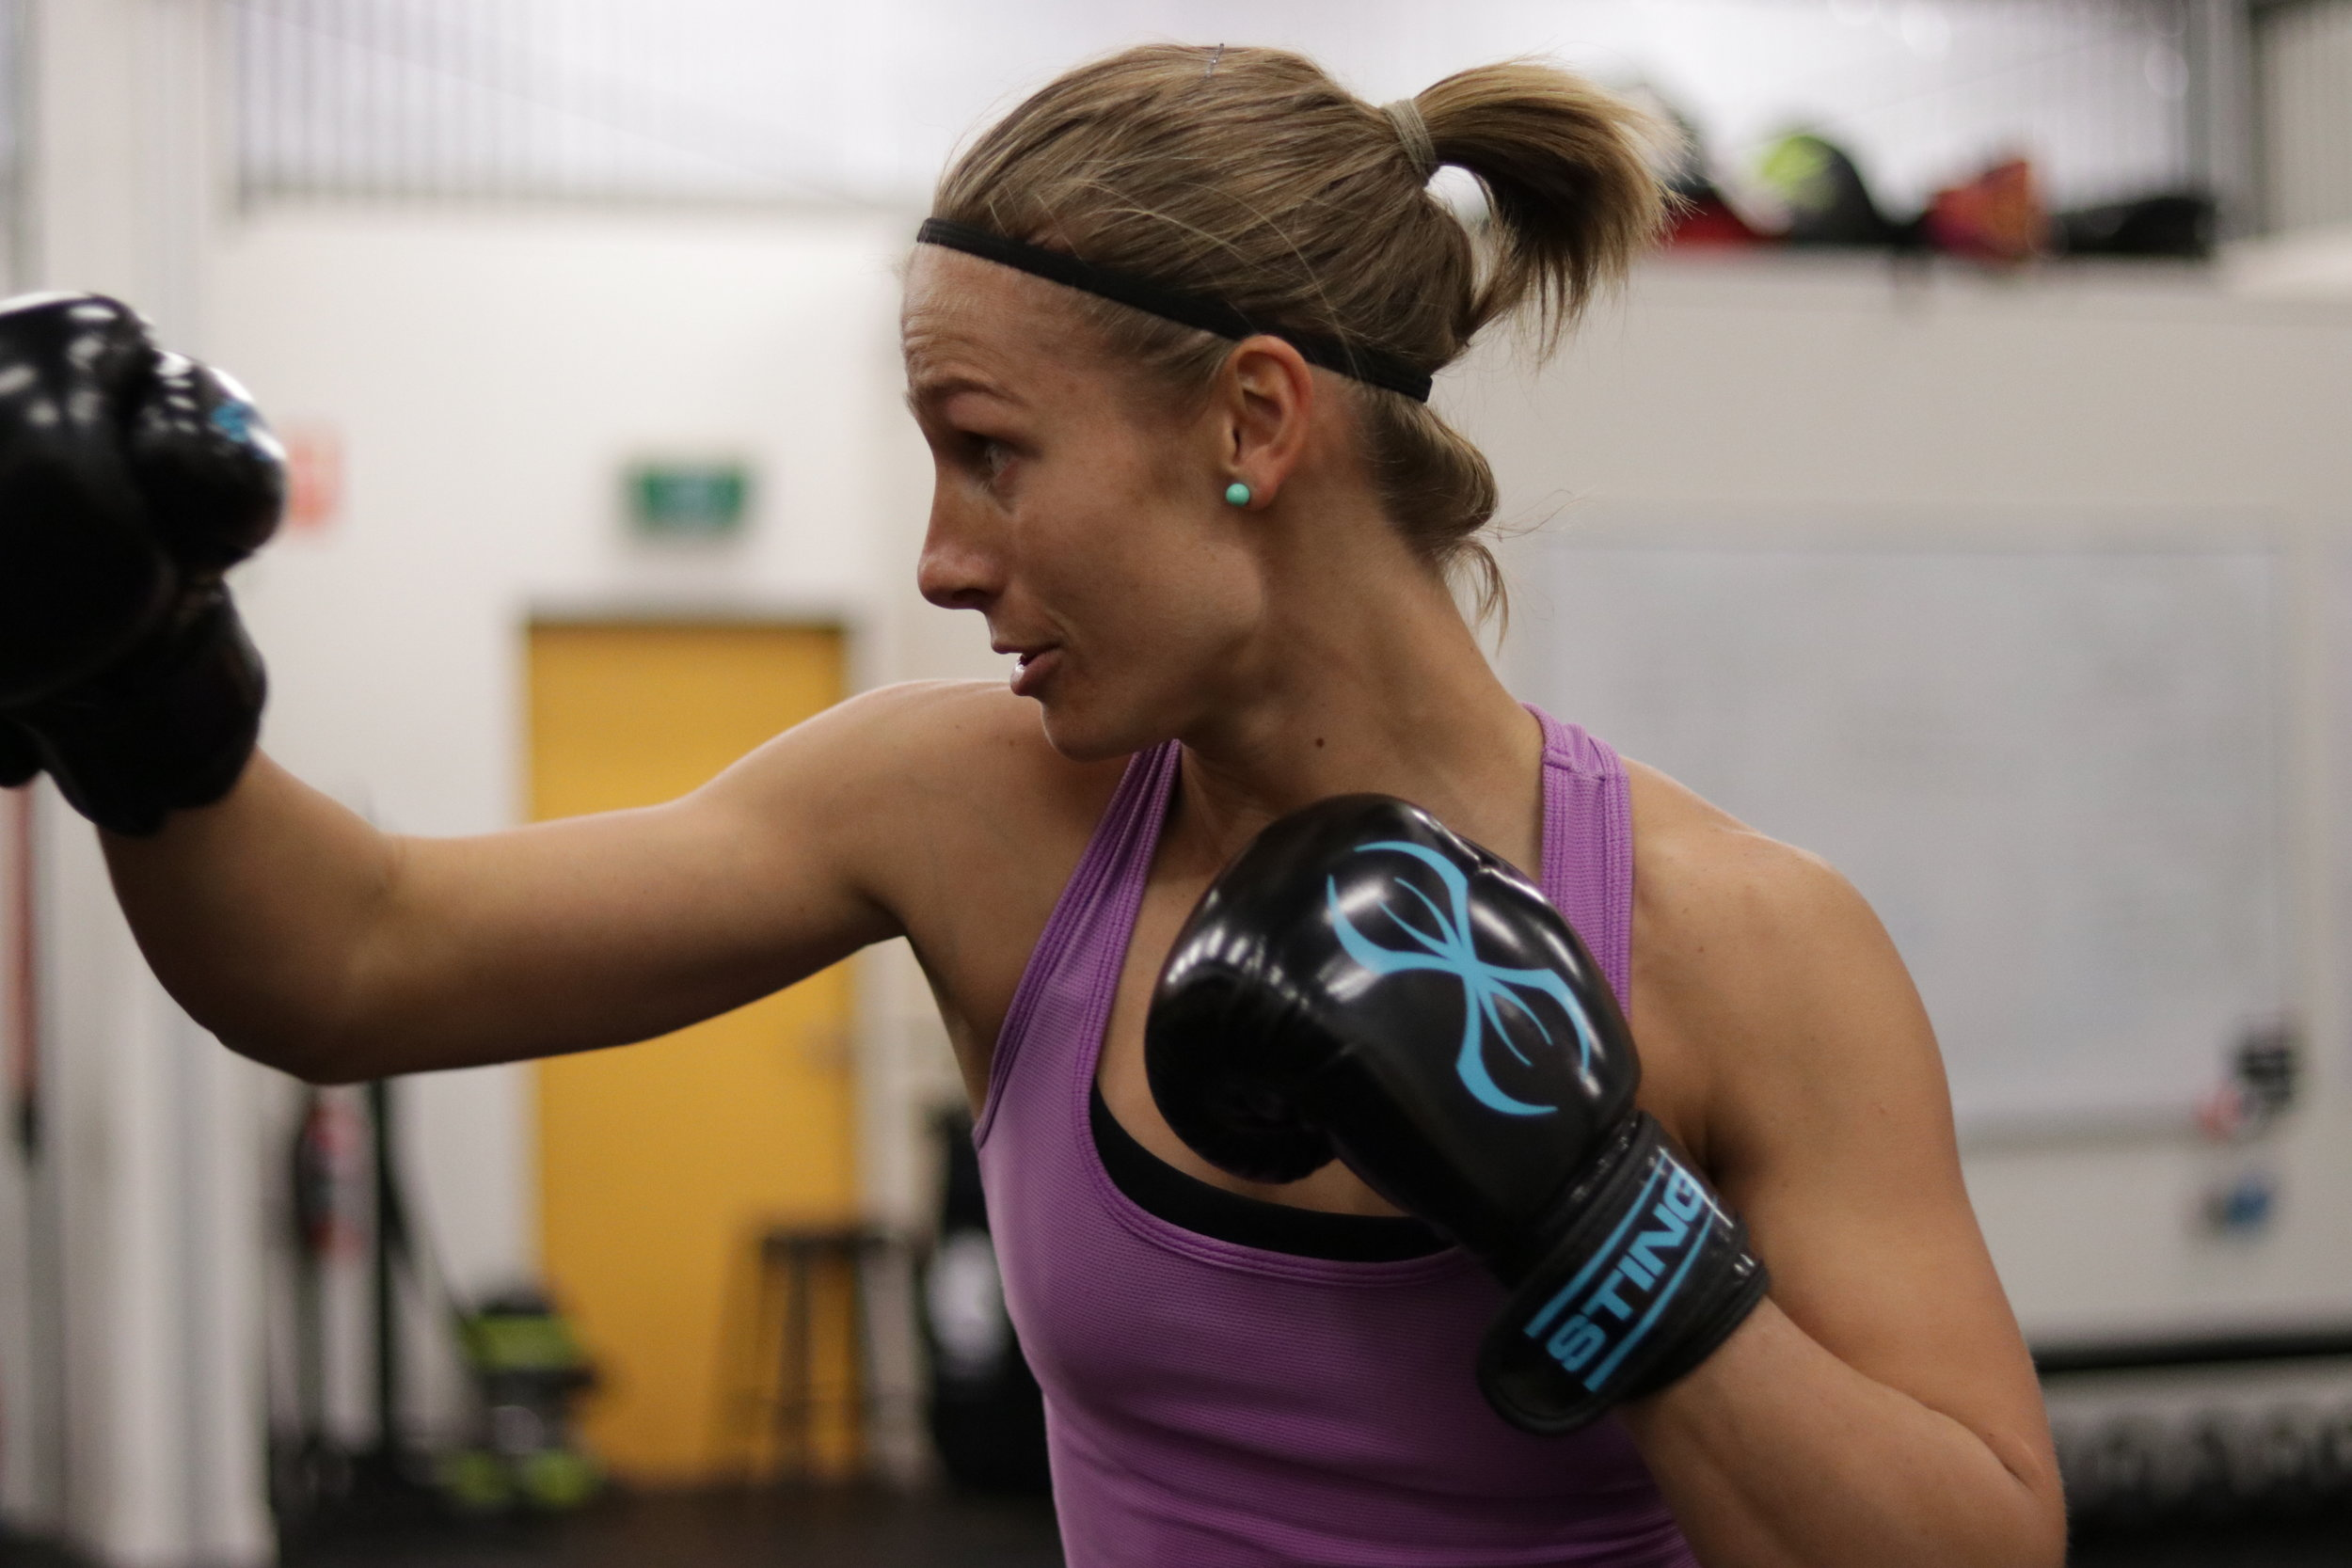 IBT - Integrated Boxing Training - Sometimes you just want to punch the S#@T out of someone or something.